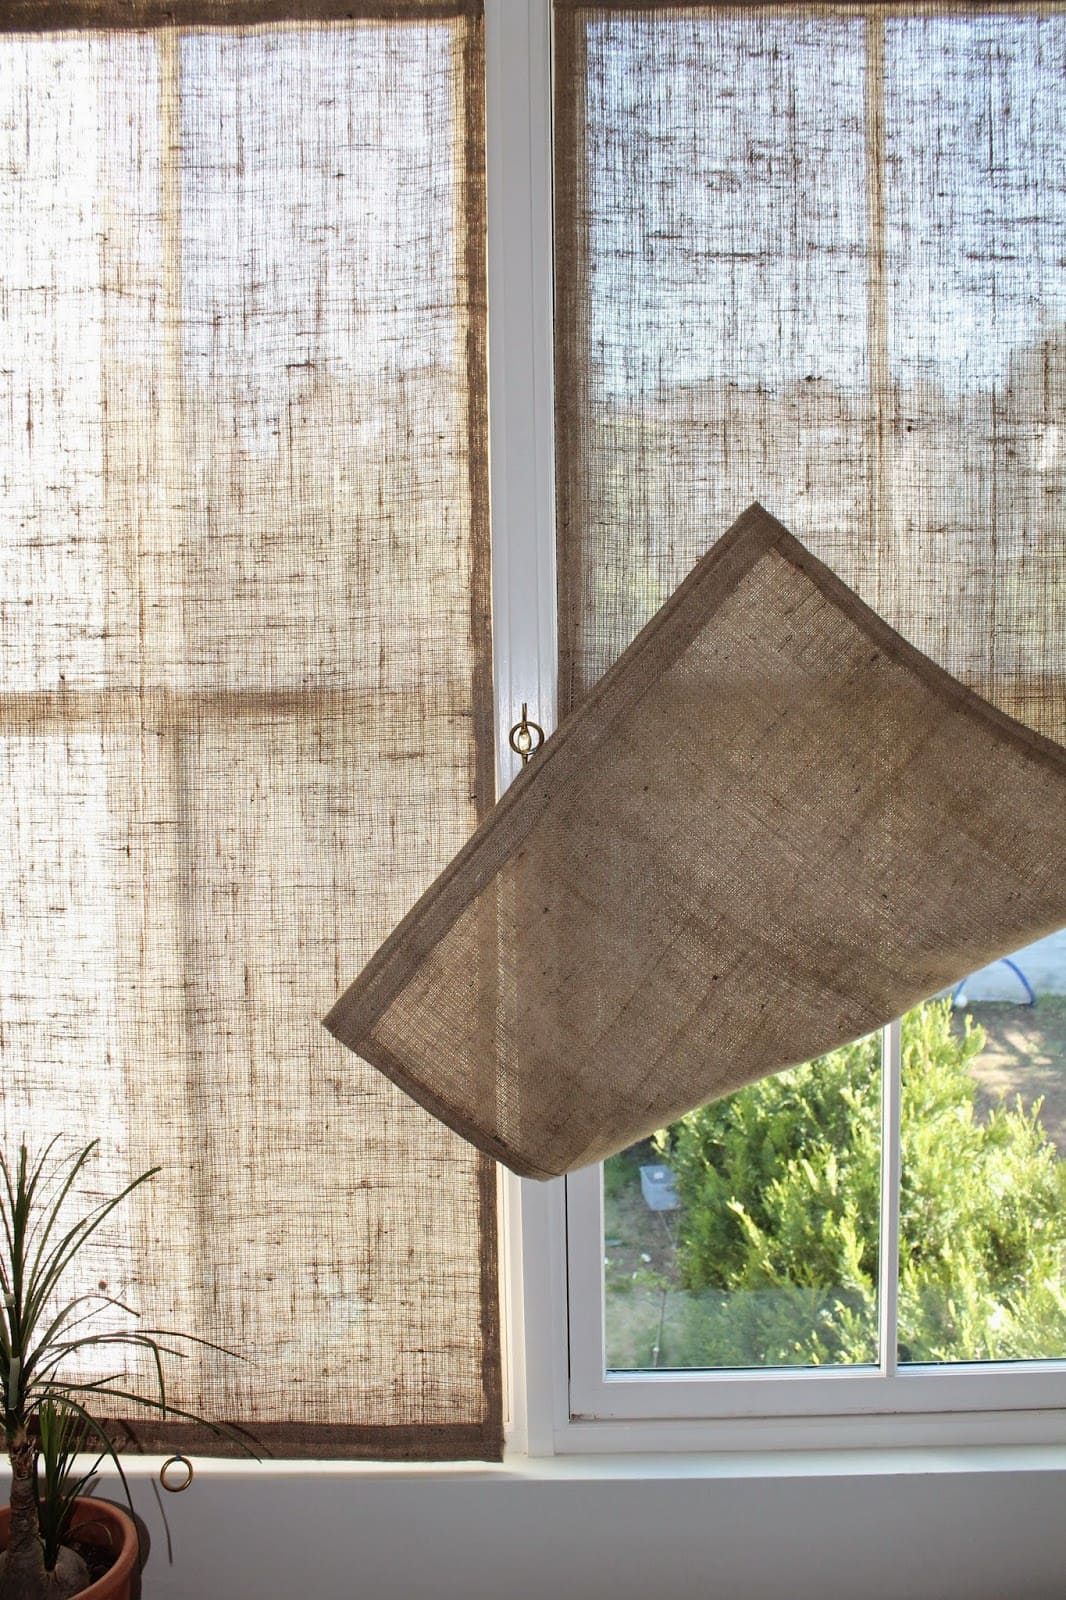 10.Burlap Window Shades via Simphome.com